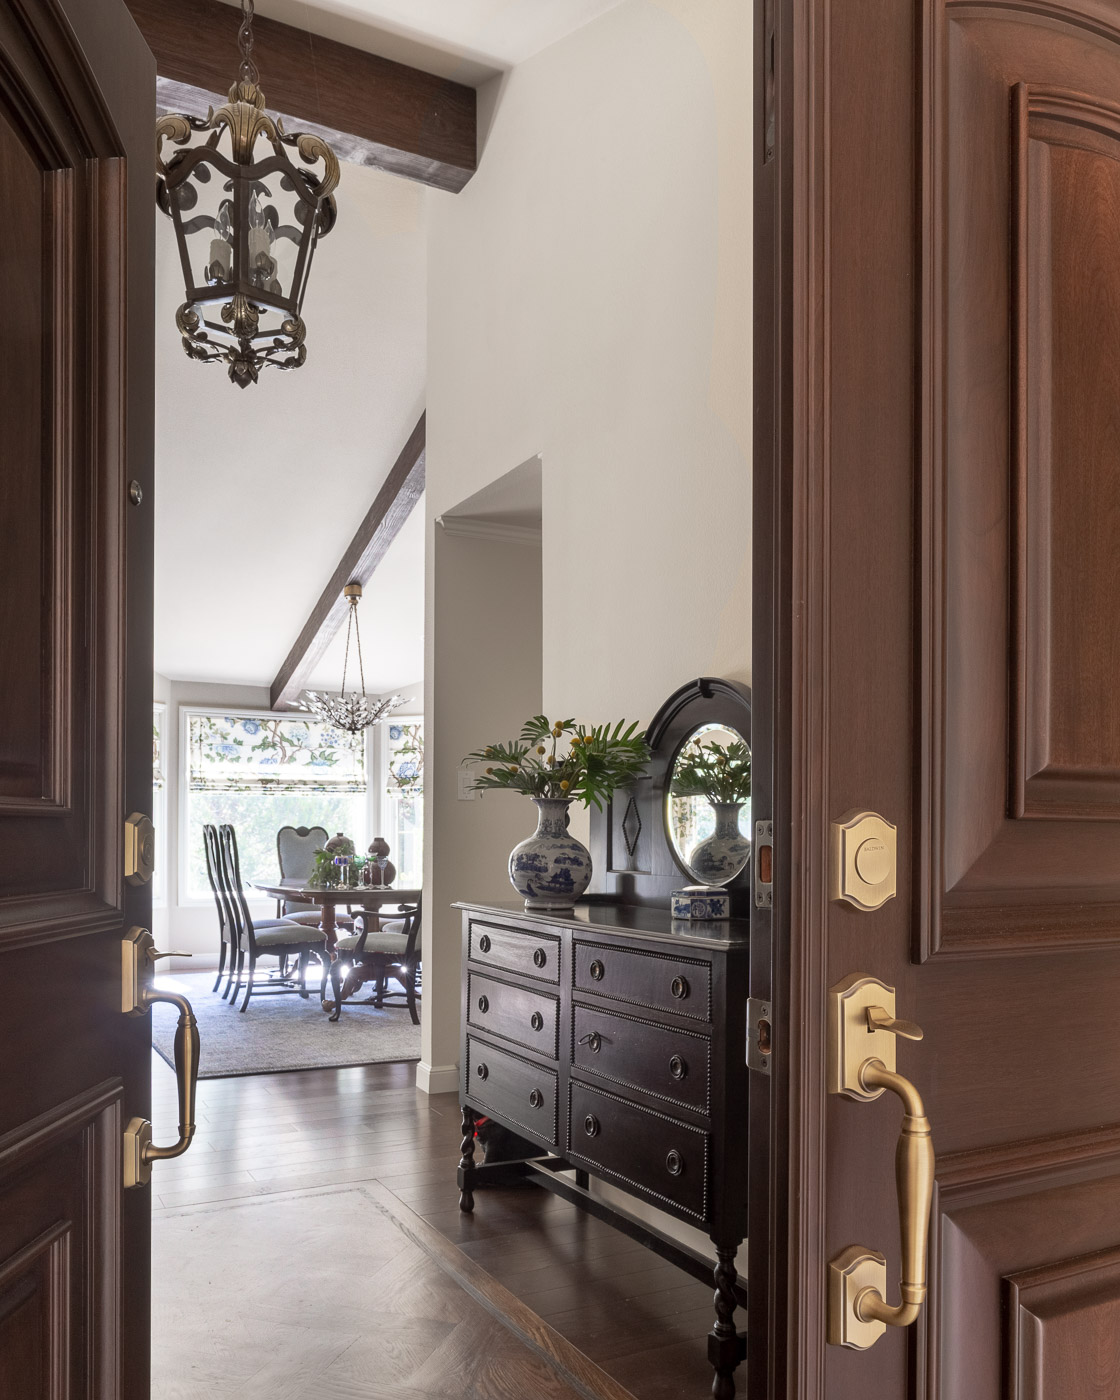 Glimpses of the exquisite Dana Creath iron lantern through chocolate brown entry doors.